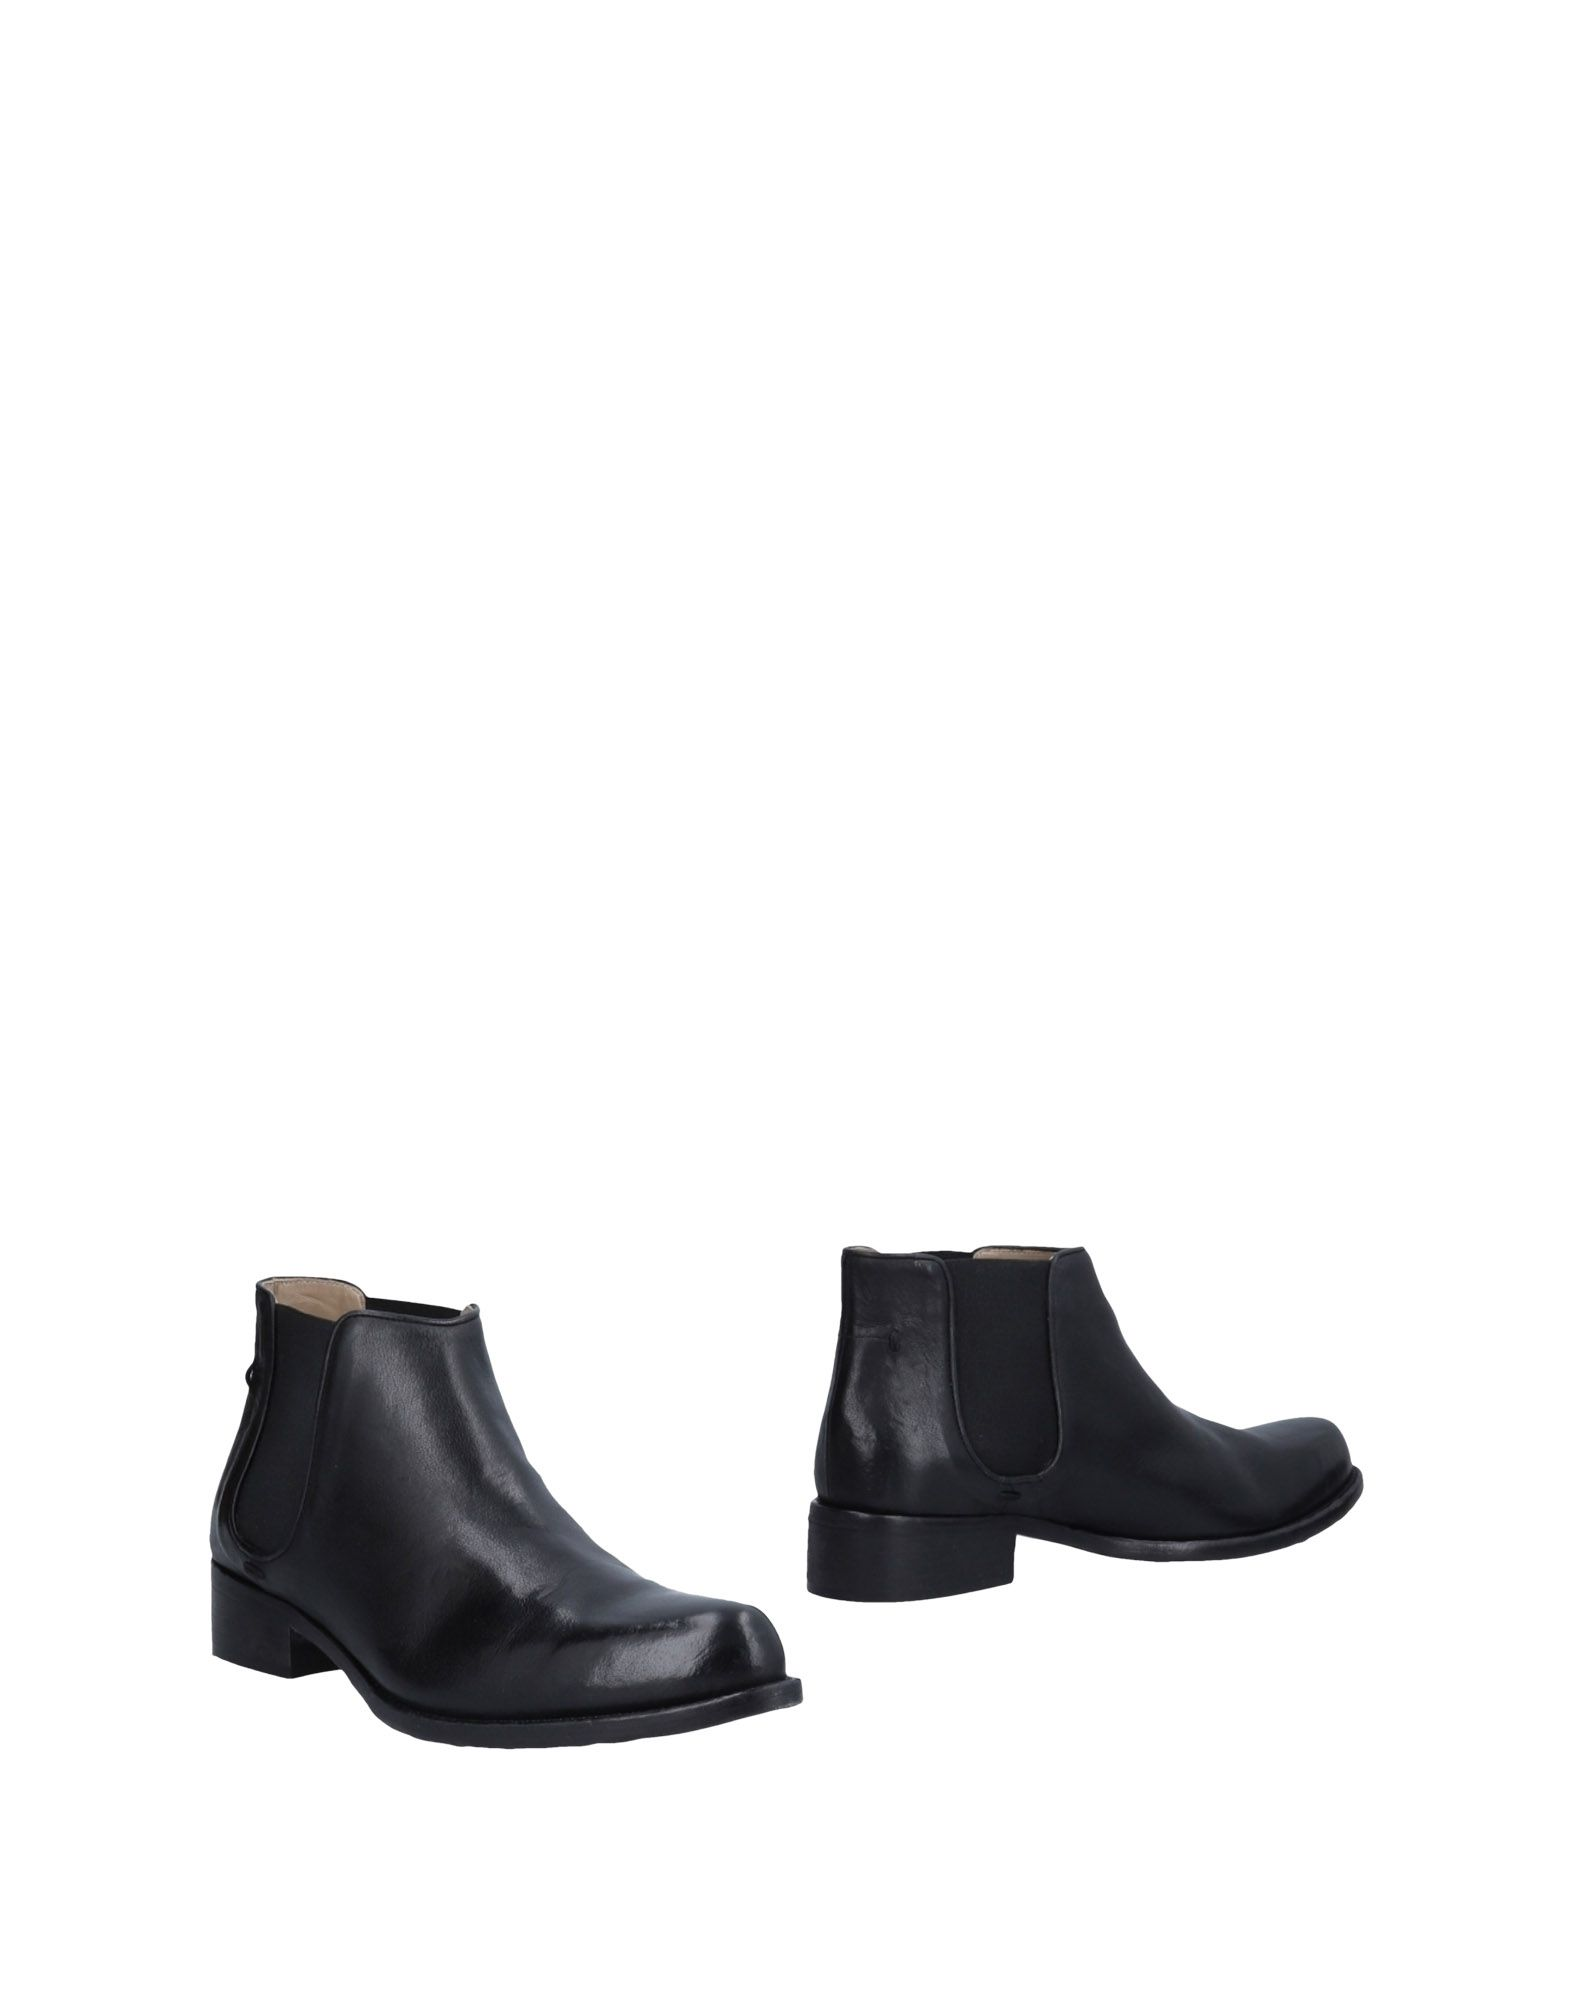 Pavin Ankle Ankle Boot - Women Pavin Ankle Ankle Boots online on  Australia - 11487396SL 9fc41f